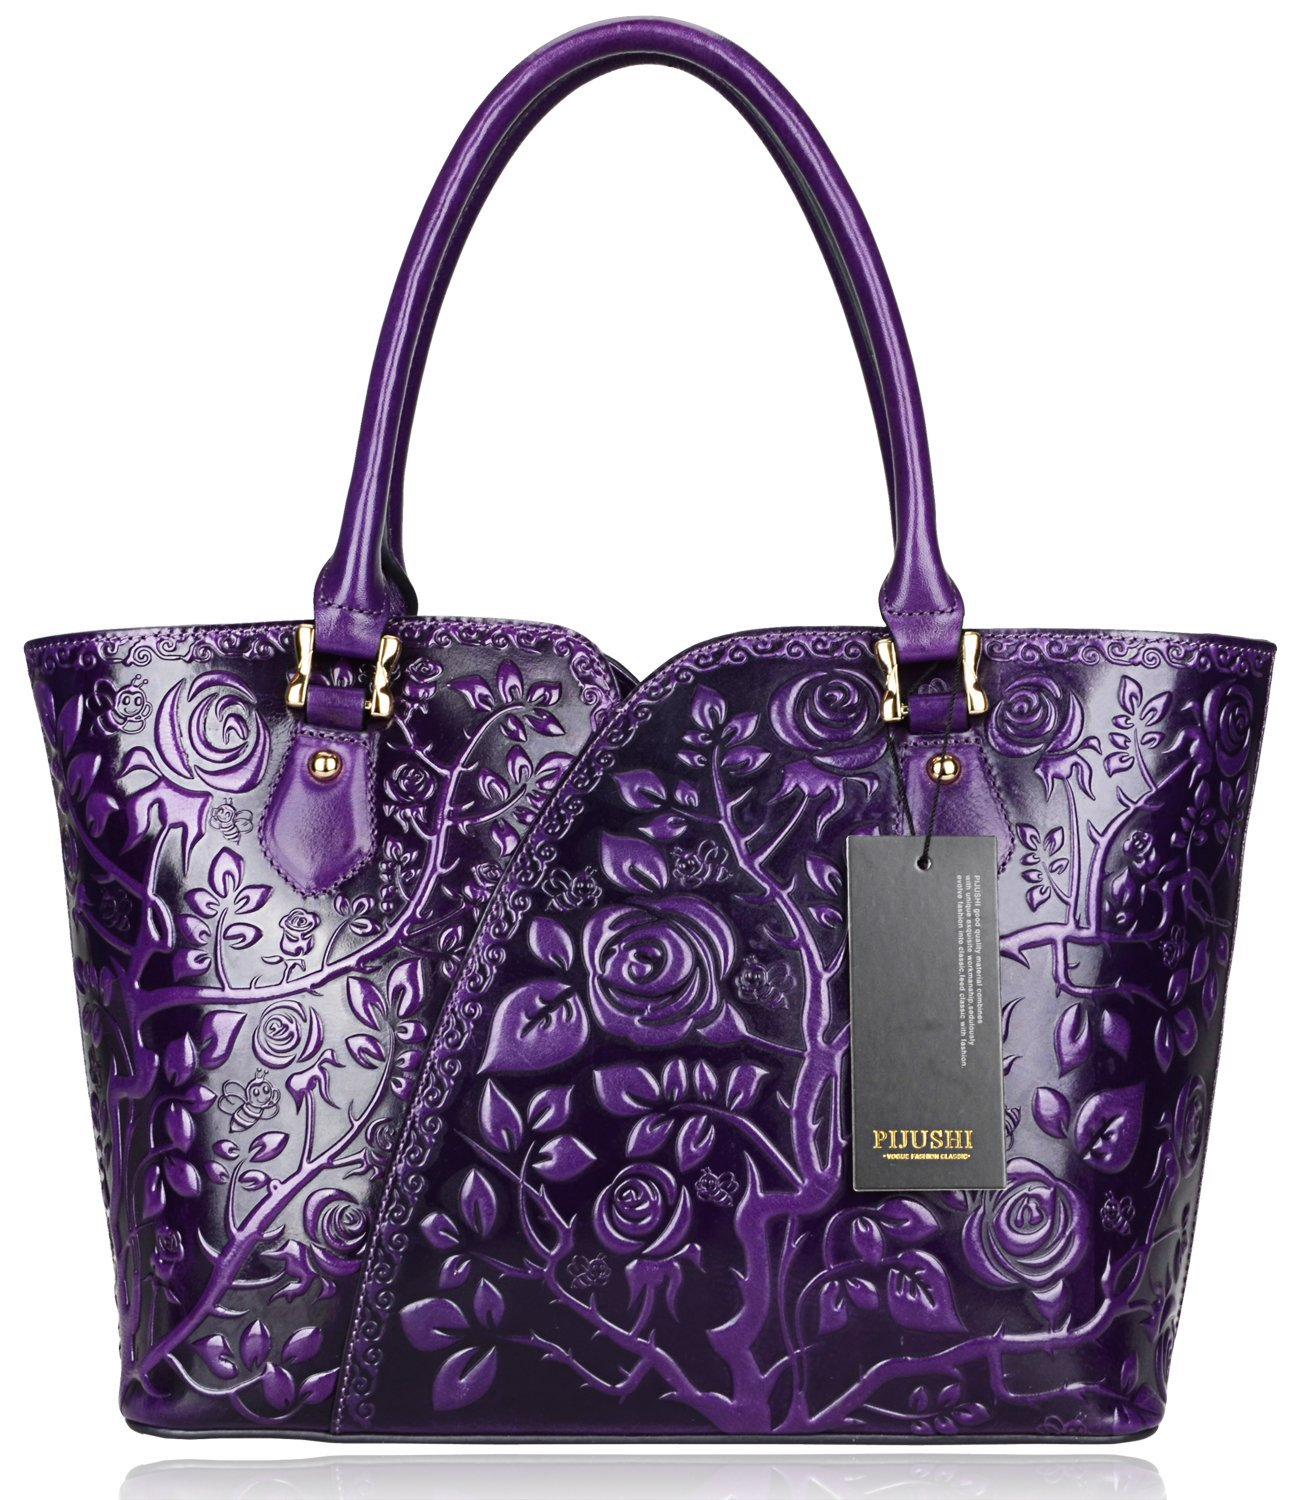 PIJUSHI Floral Purse Designer Satchel Handbags Women Totes Shoulder Bags 22328 (one size, Purple)